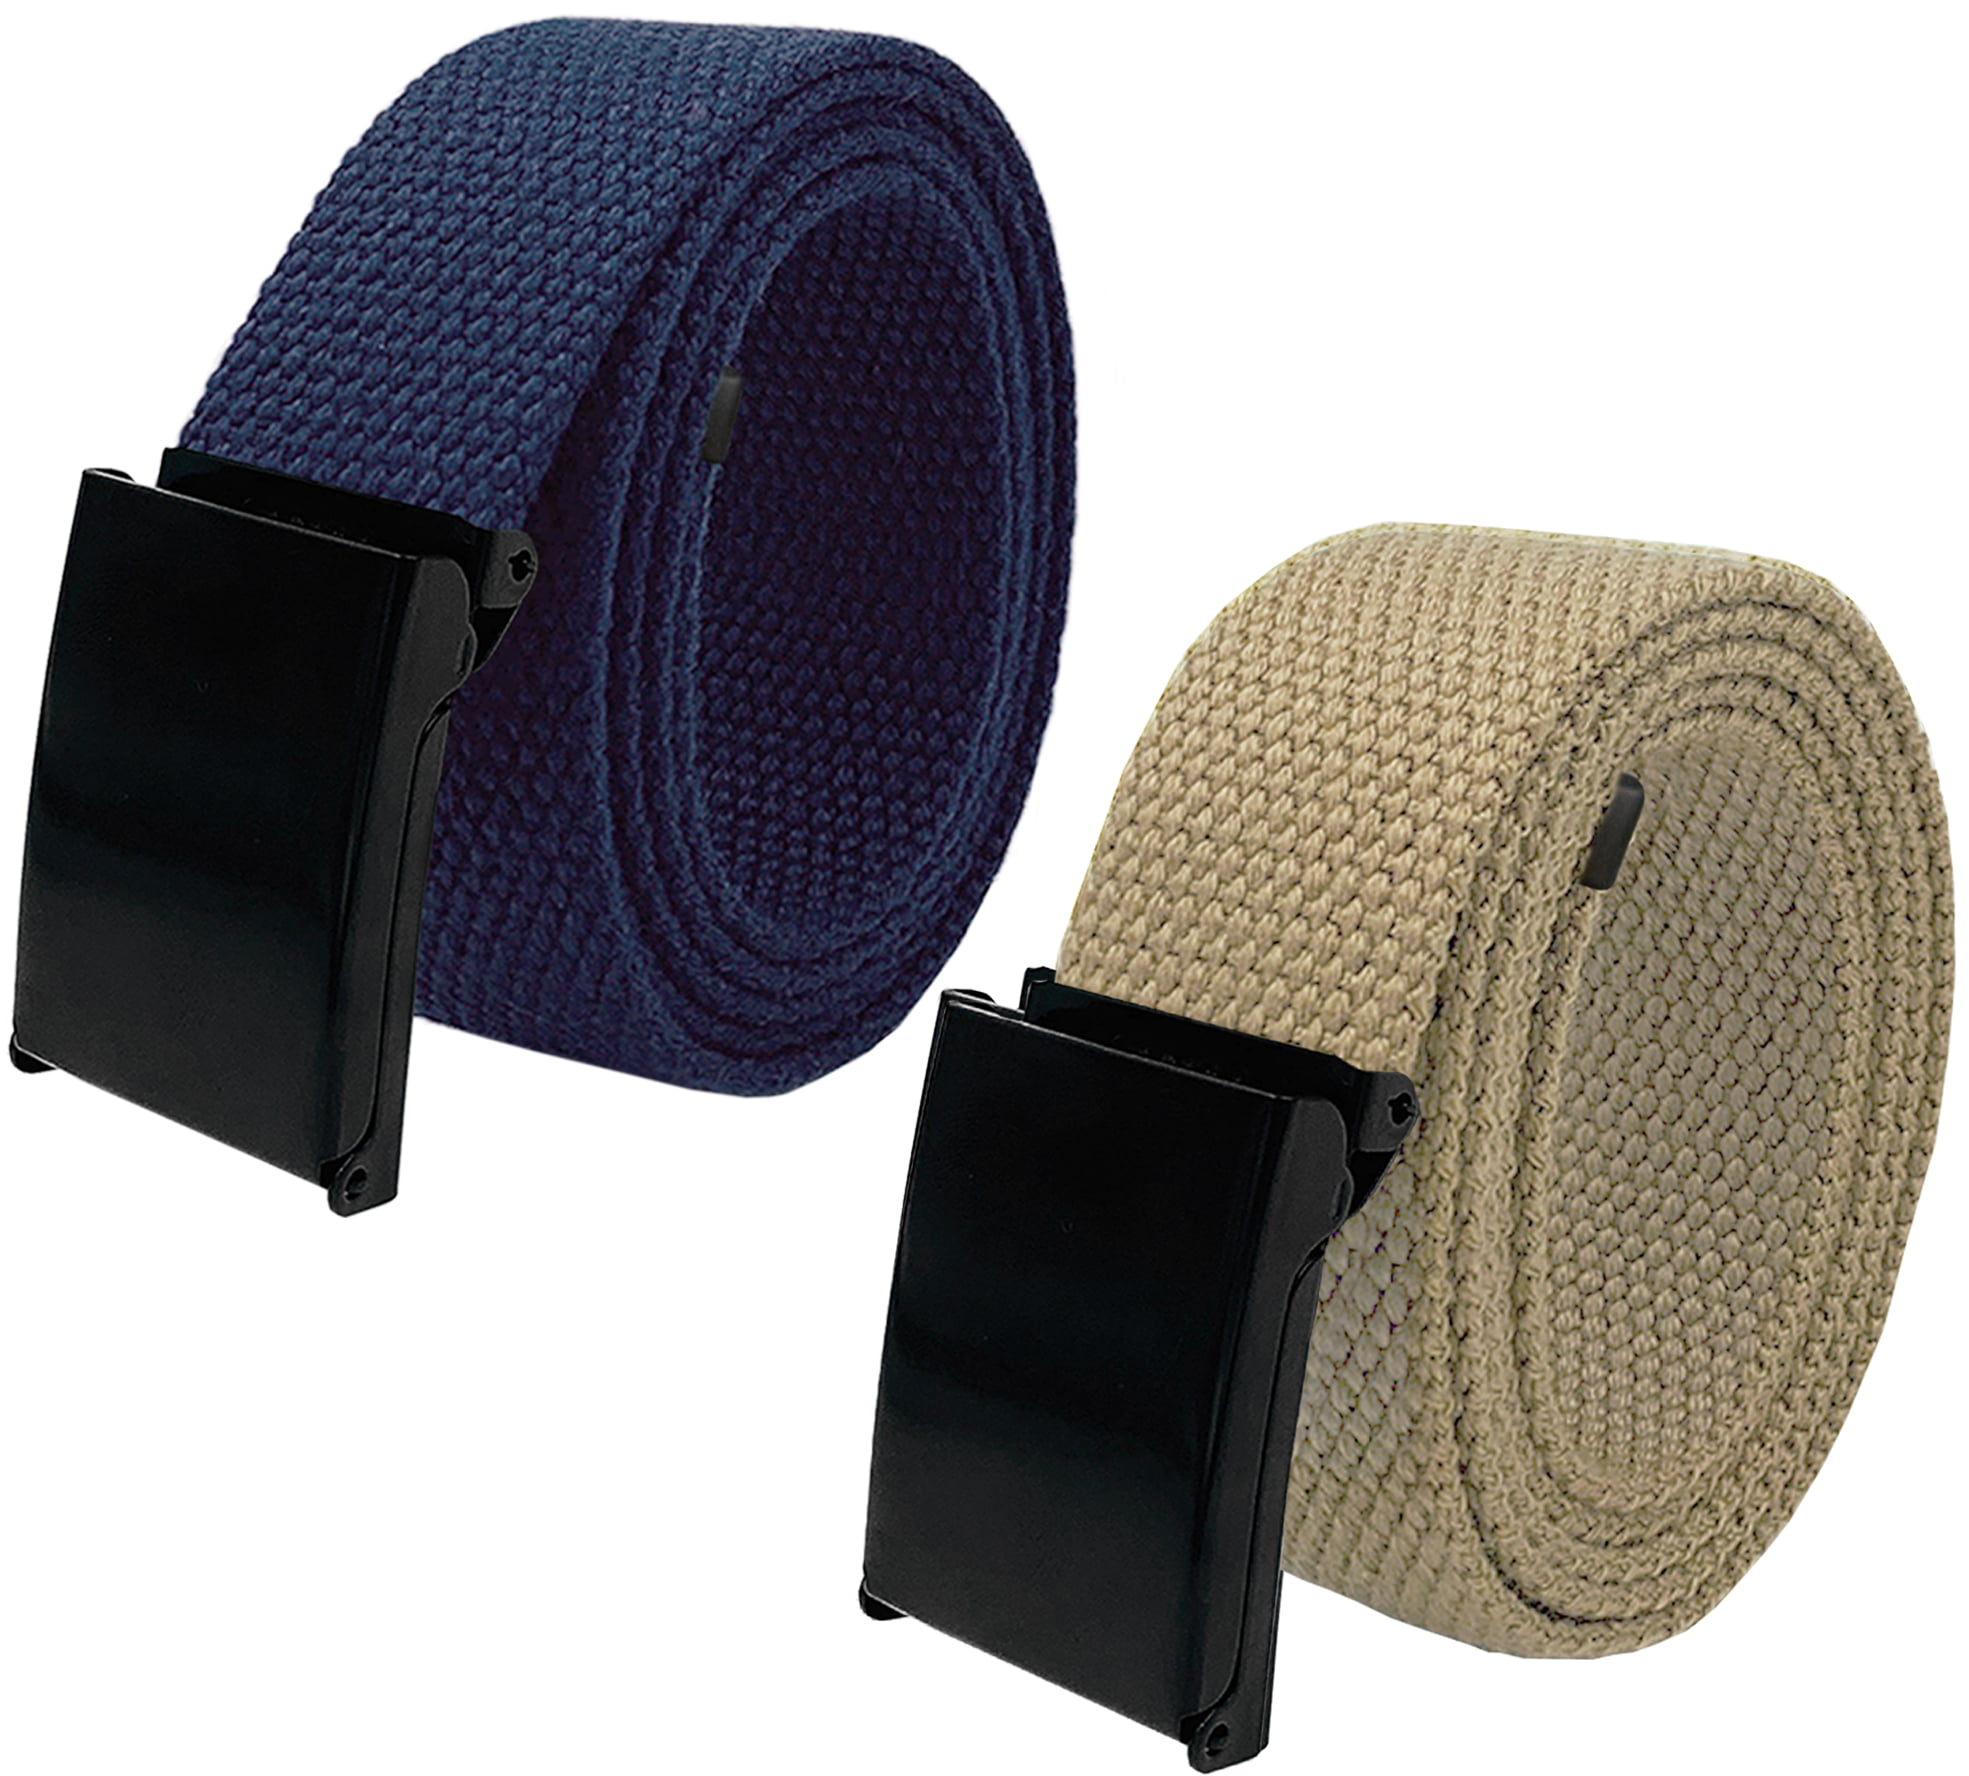 Boys Cub Scout Uniform Belt with Flip Top Buckle and Adjustable Navy Web Belt Small